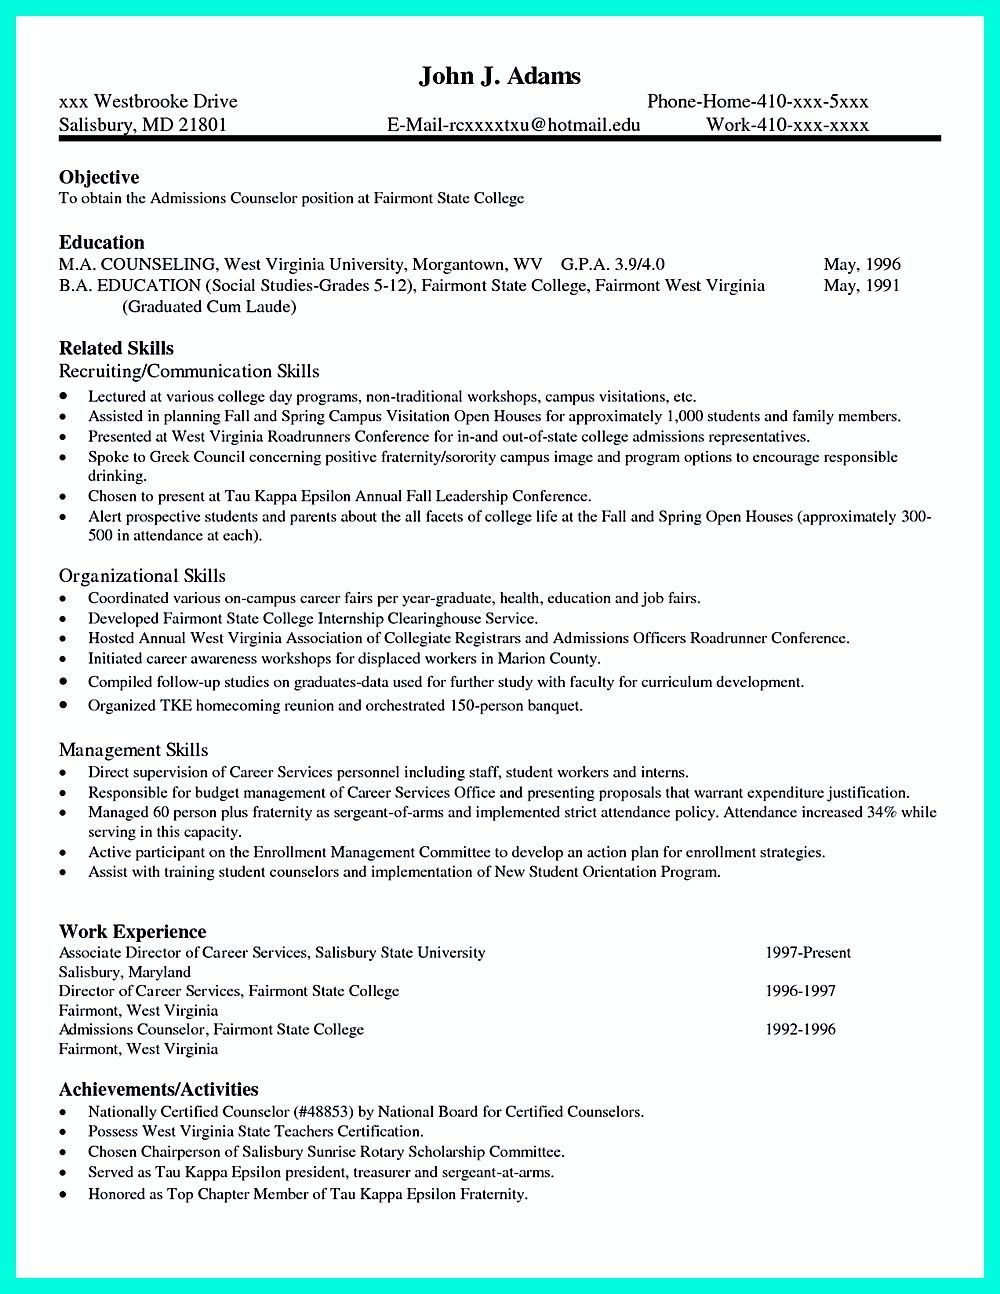 college application resume is very advantageous when you want to apply for a college not